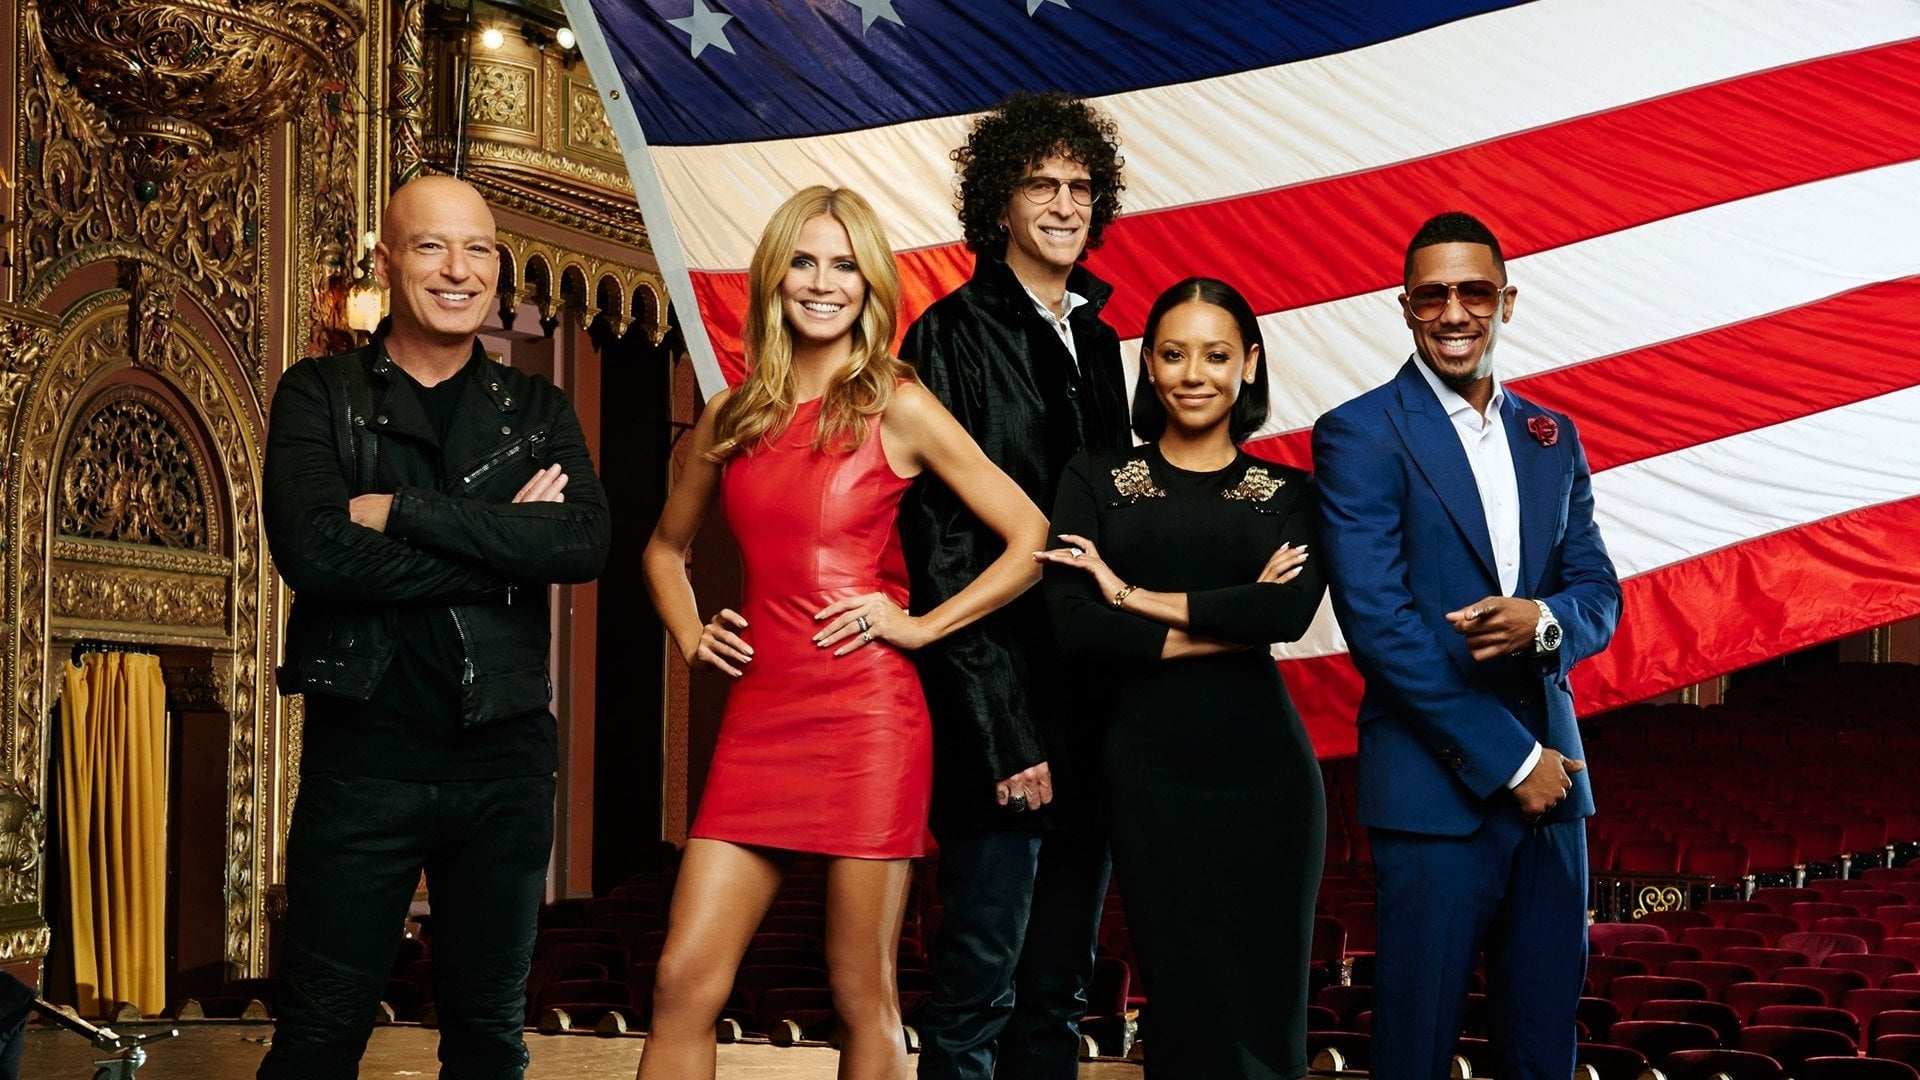 America's Got Talent - Season 15